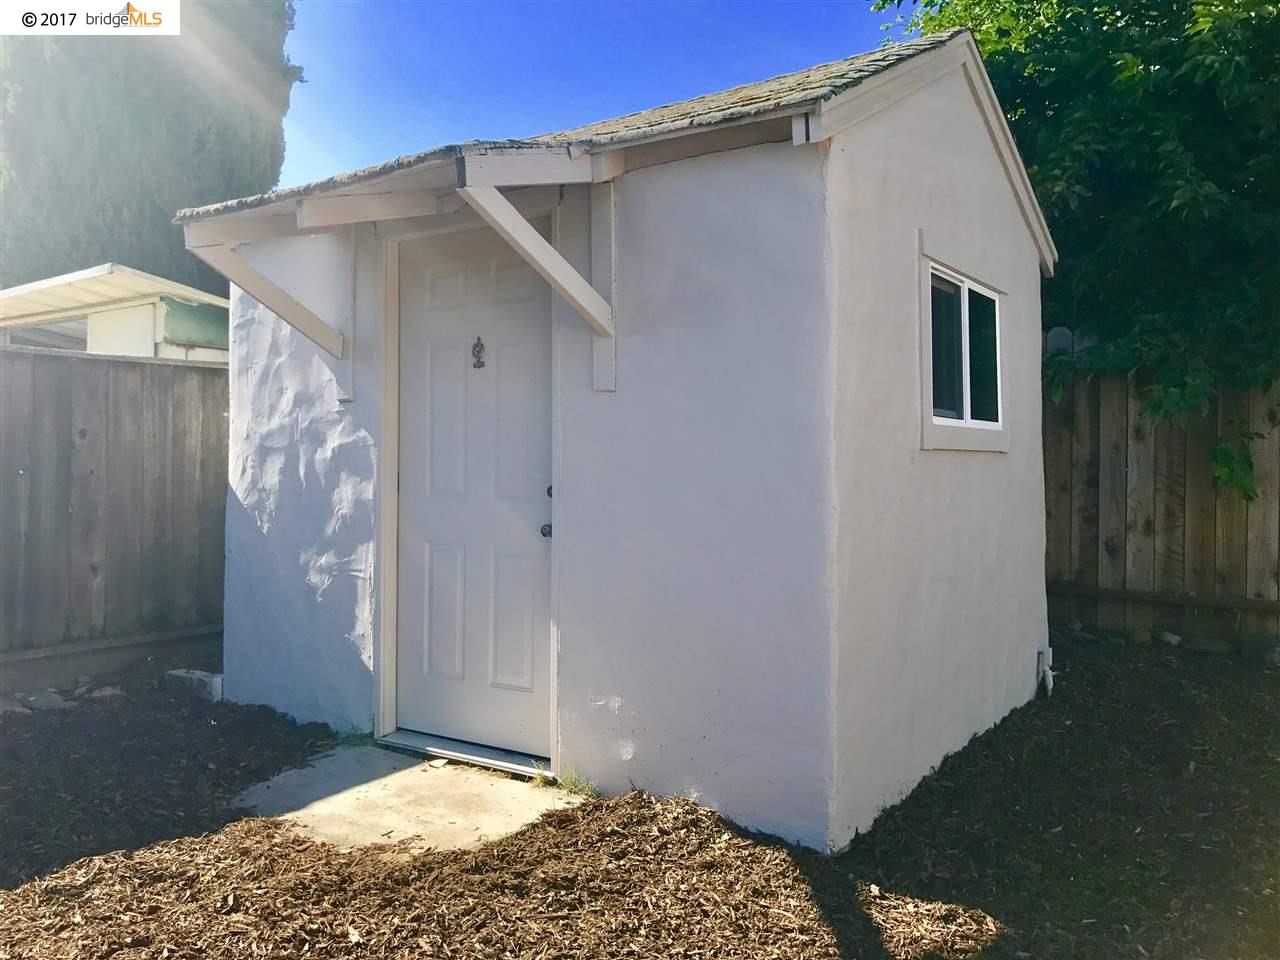 Additional photo for property listing at 2717 El Rey Street  Antioch, California 94509 United States